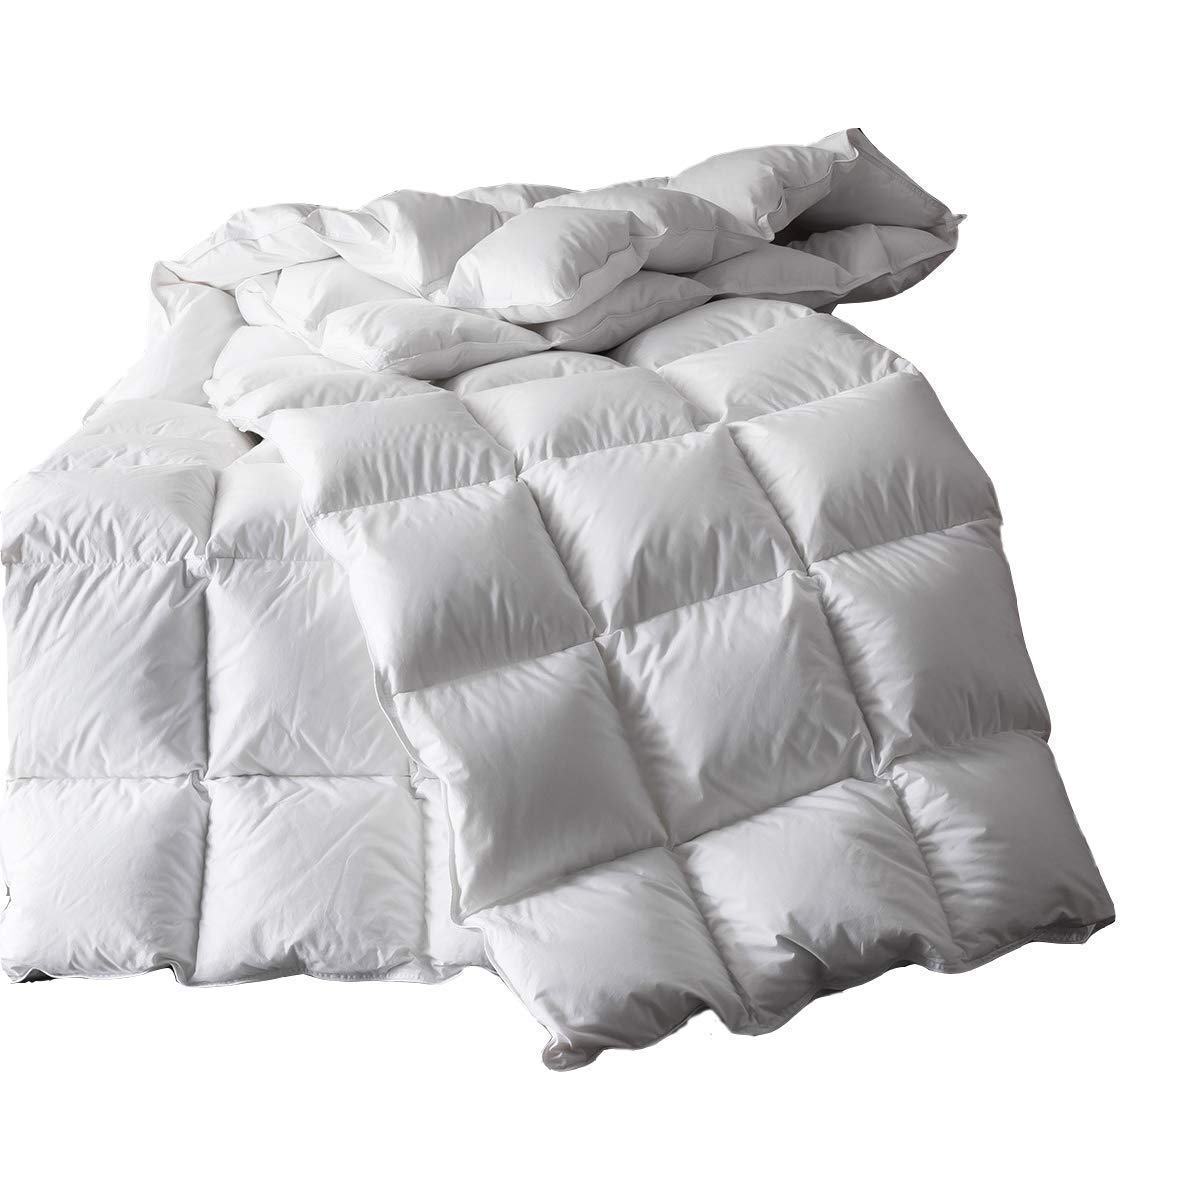 WR Down Comforter,All Season Goose Down Comforter,King Duvet Insert 1200 Thread Count 750+ Fill Power 100% Egyptian Cotton(106x90 White) (King Size)